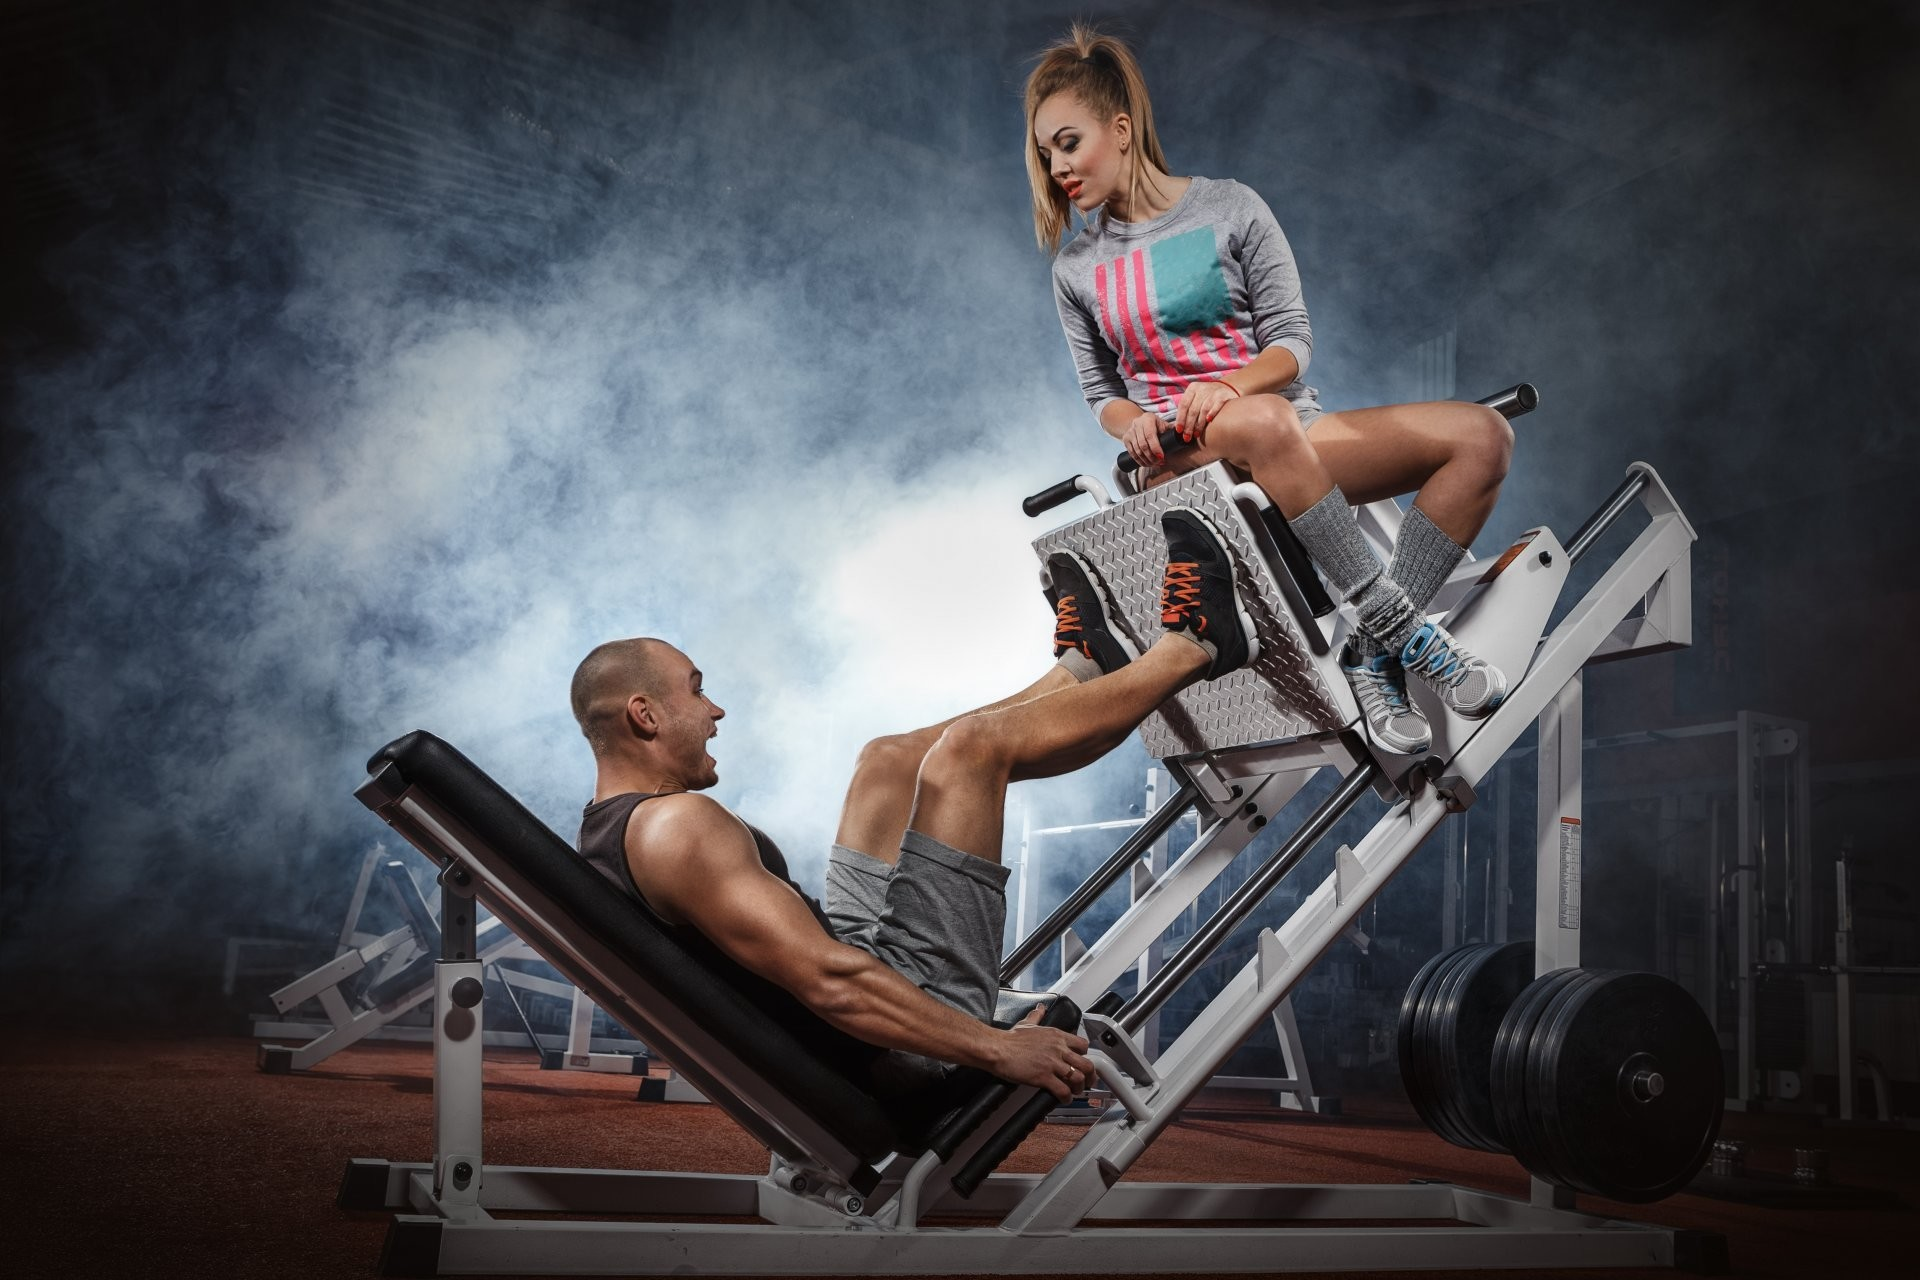 Workout Wallpapers 65 Images